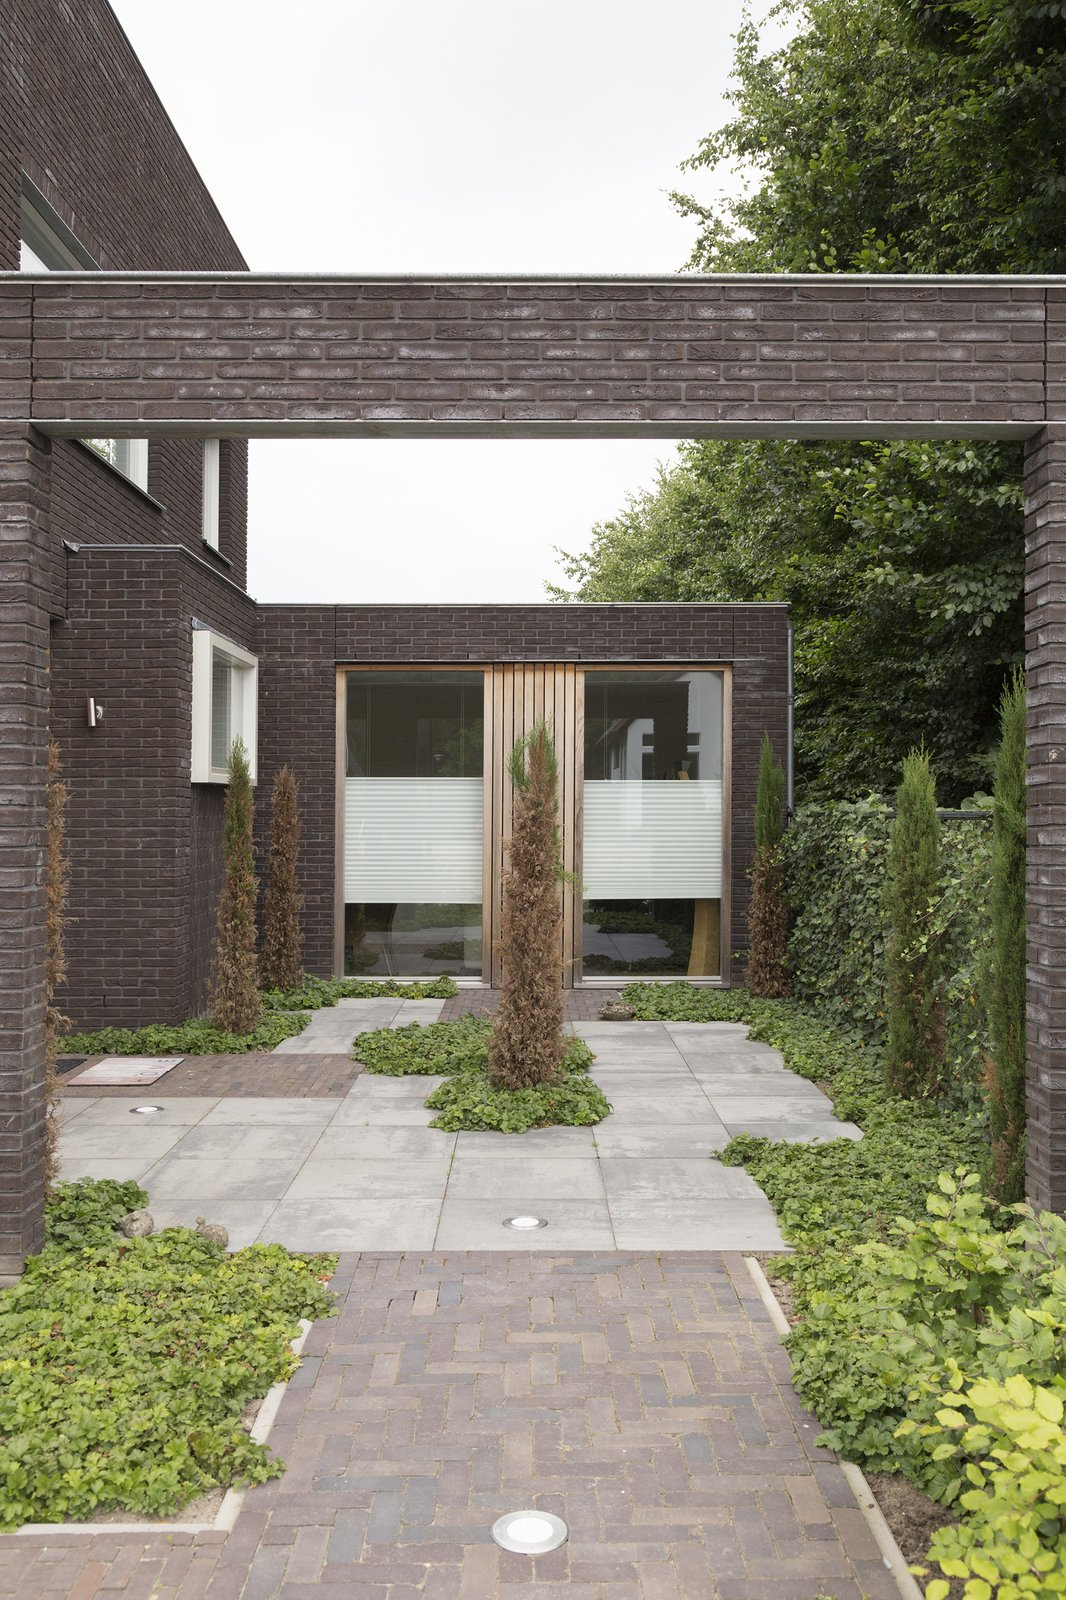 patio  House Vlijmen by Jan Couwenberg